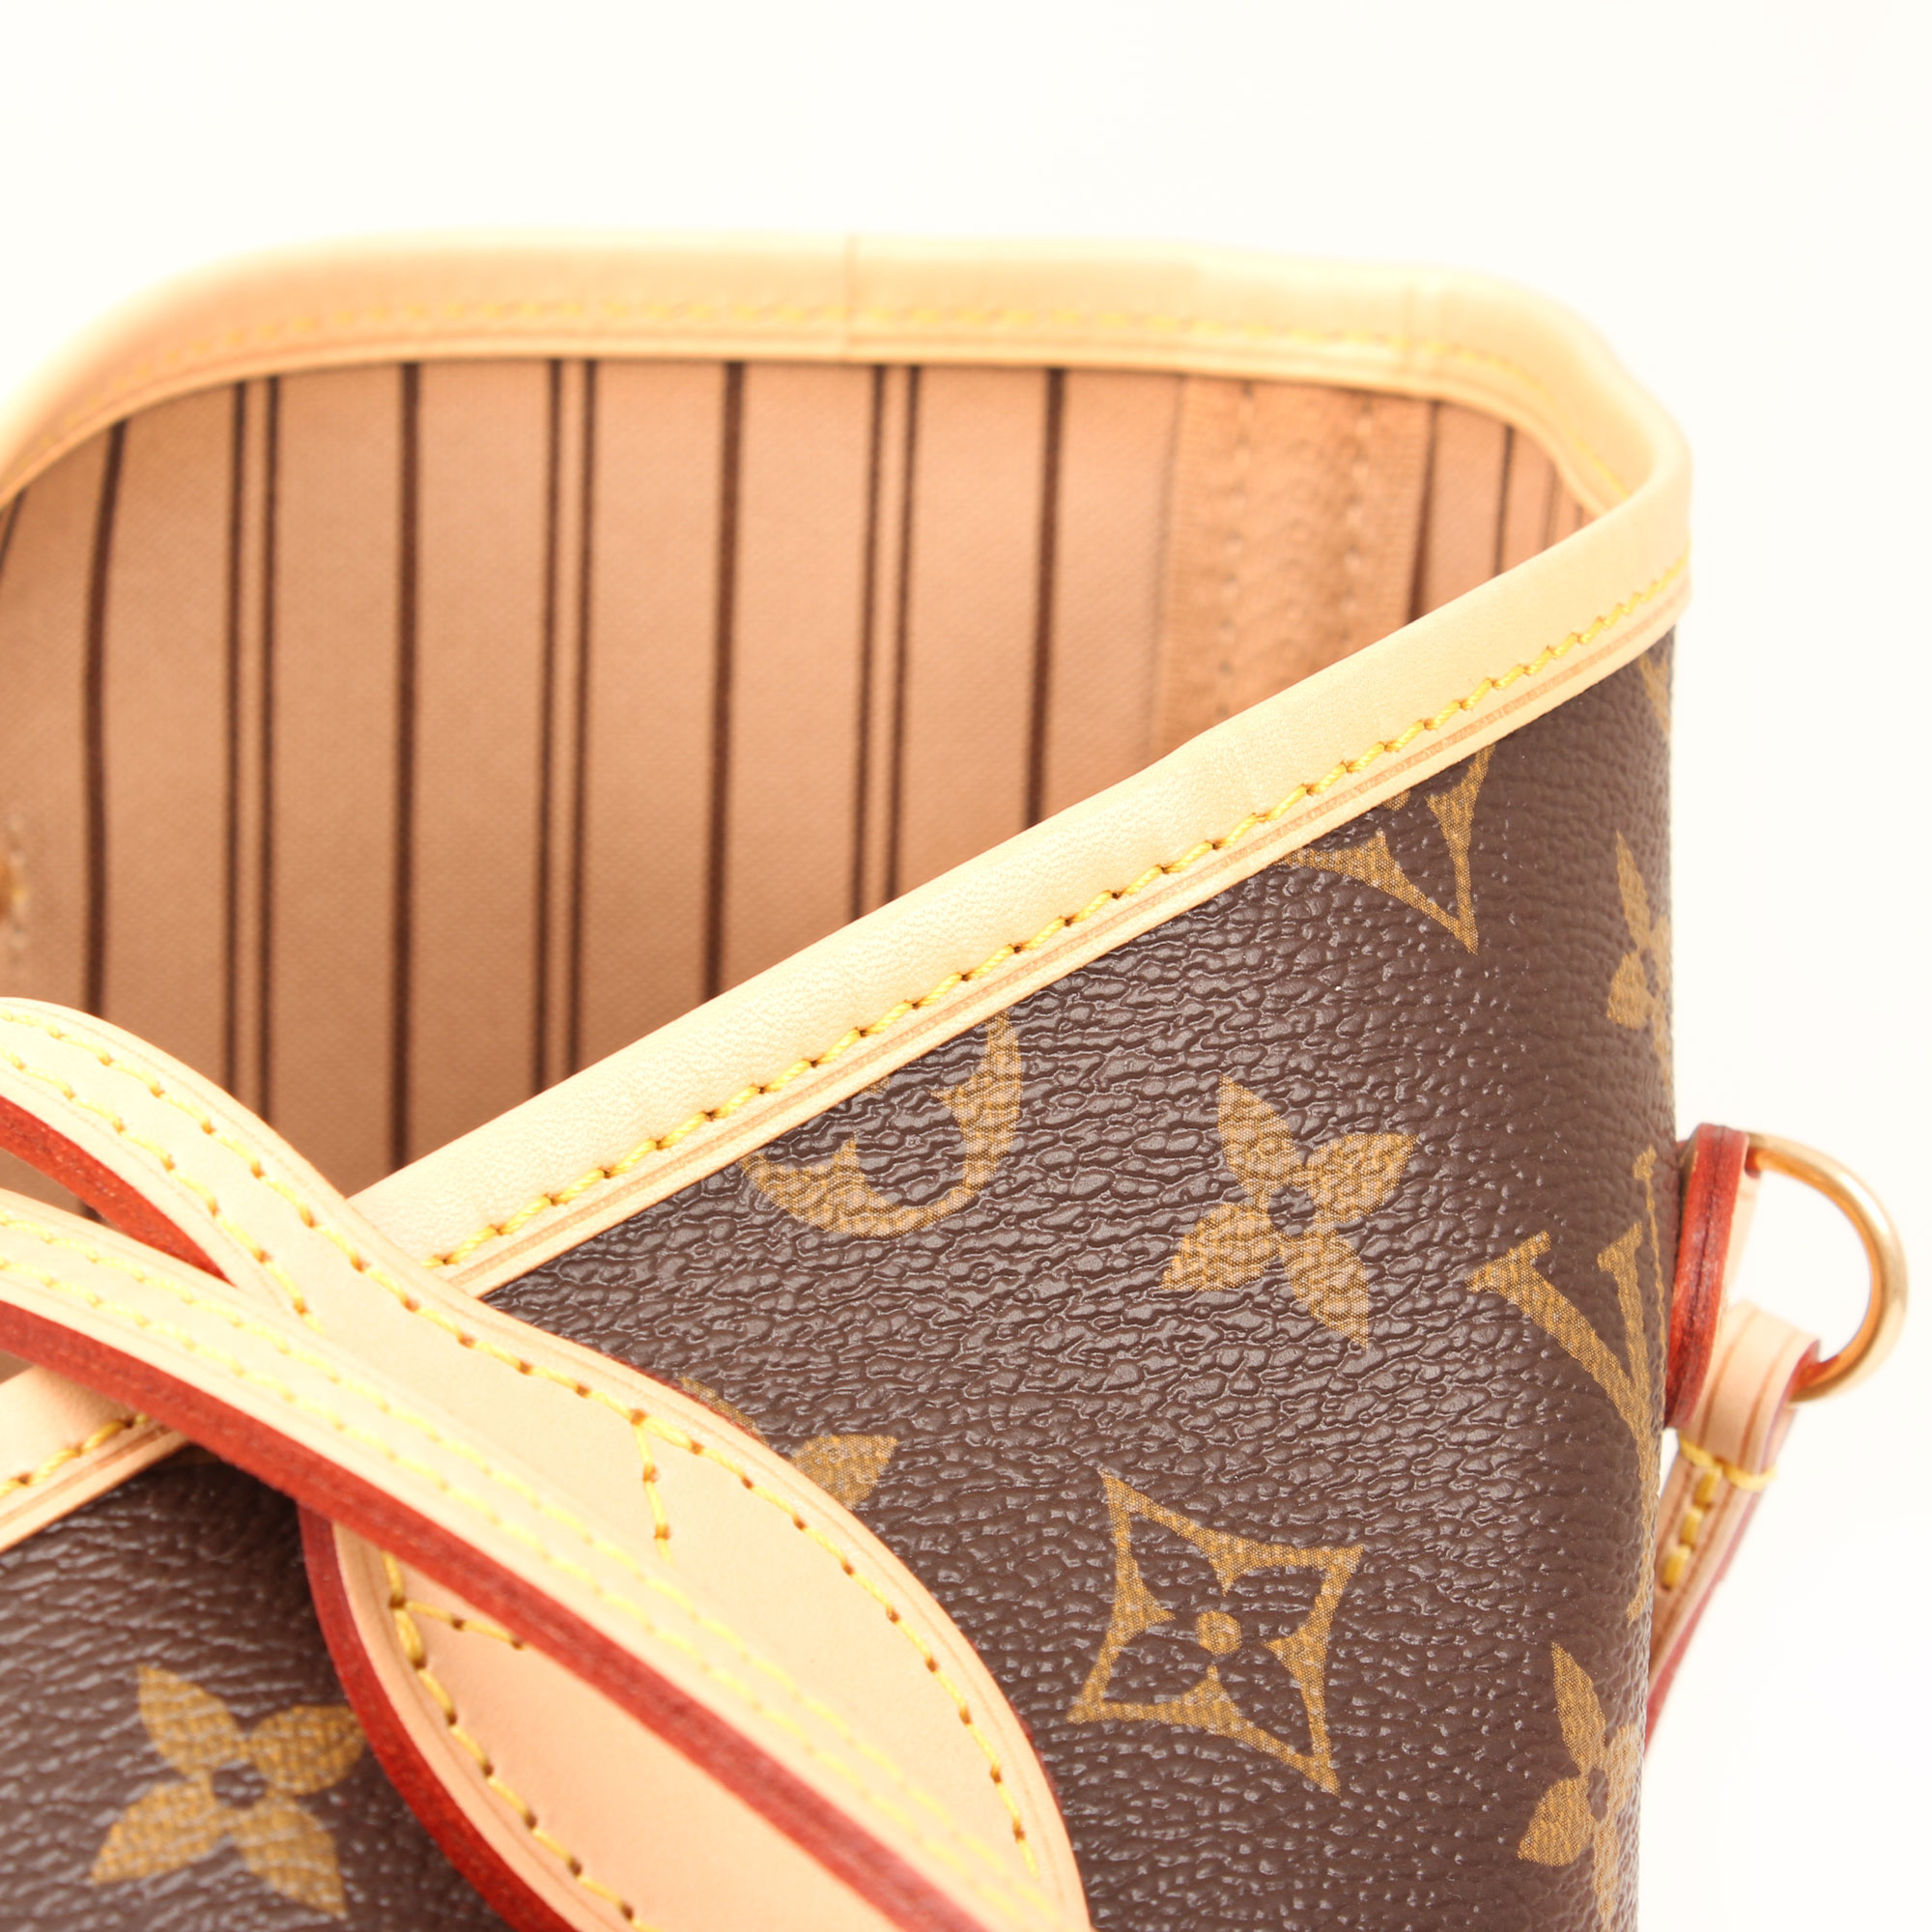 bolso-louis-vuitton-neverfull-gm-monogram-nuevo-asas